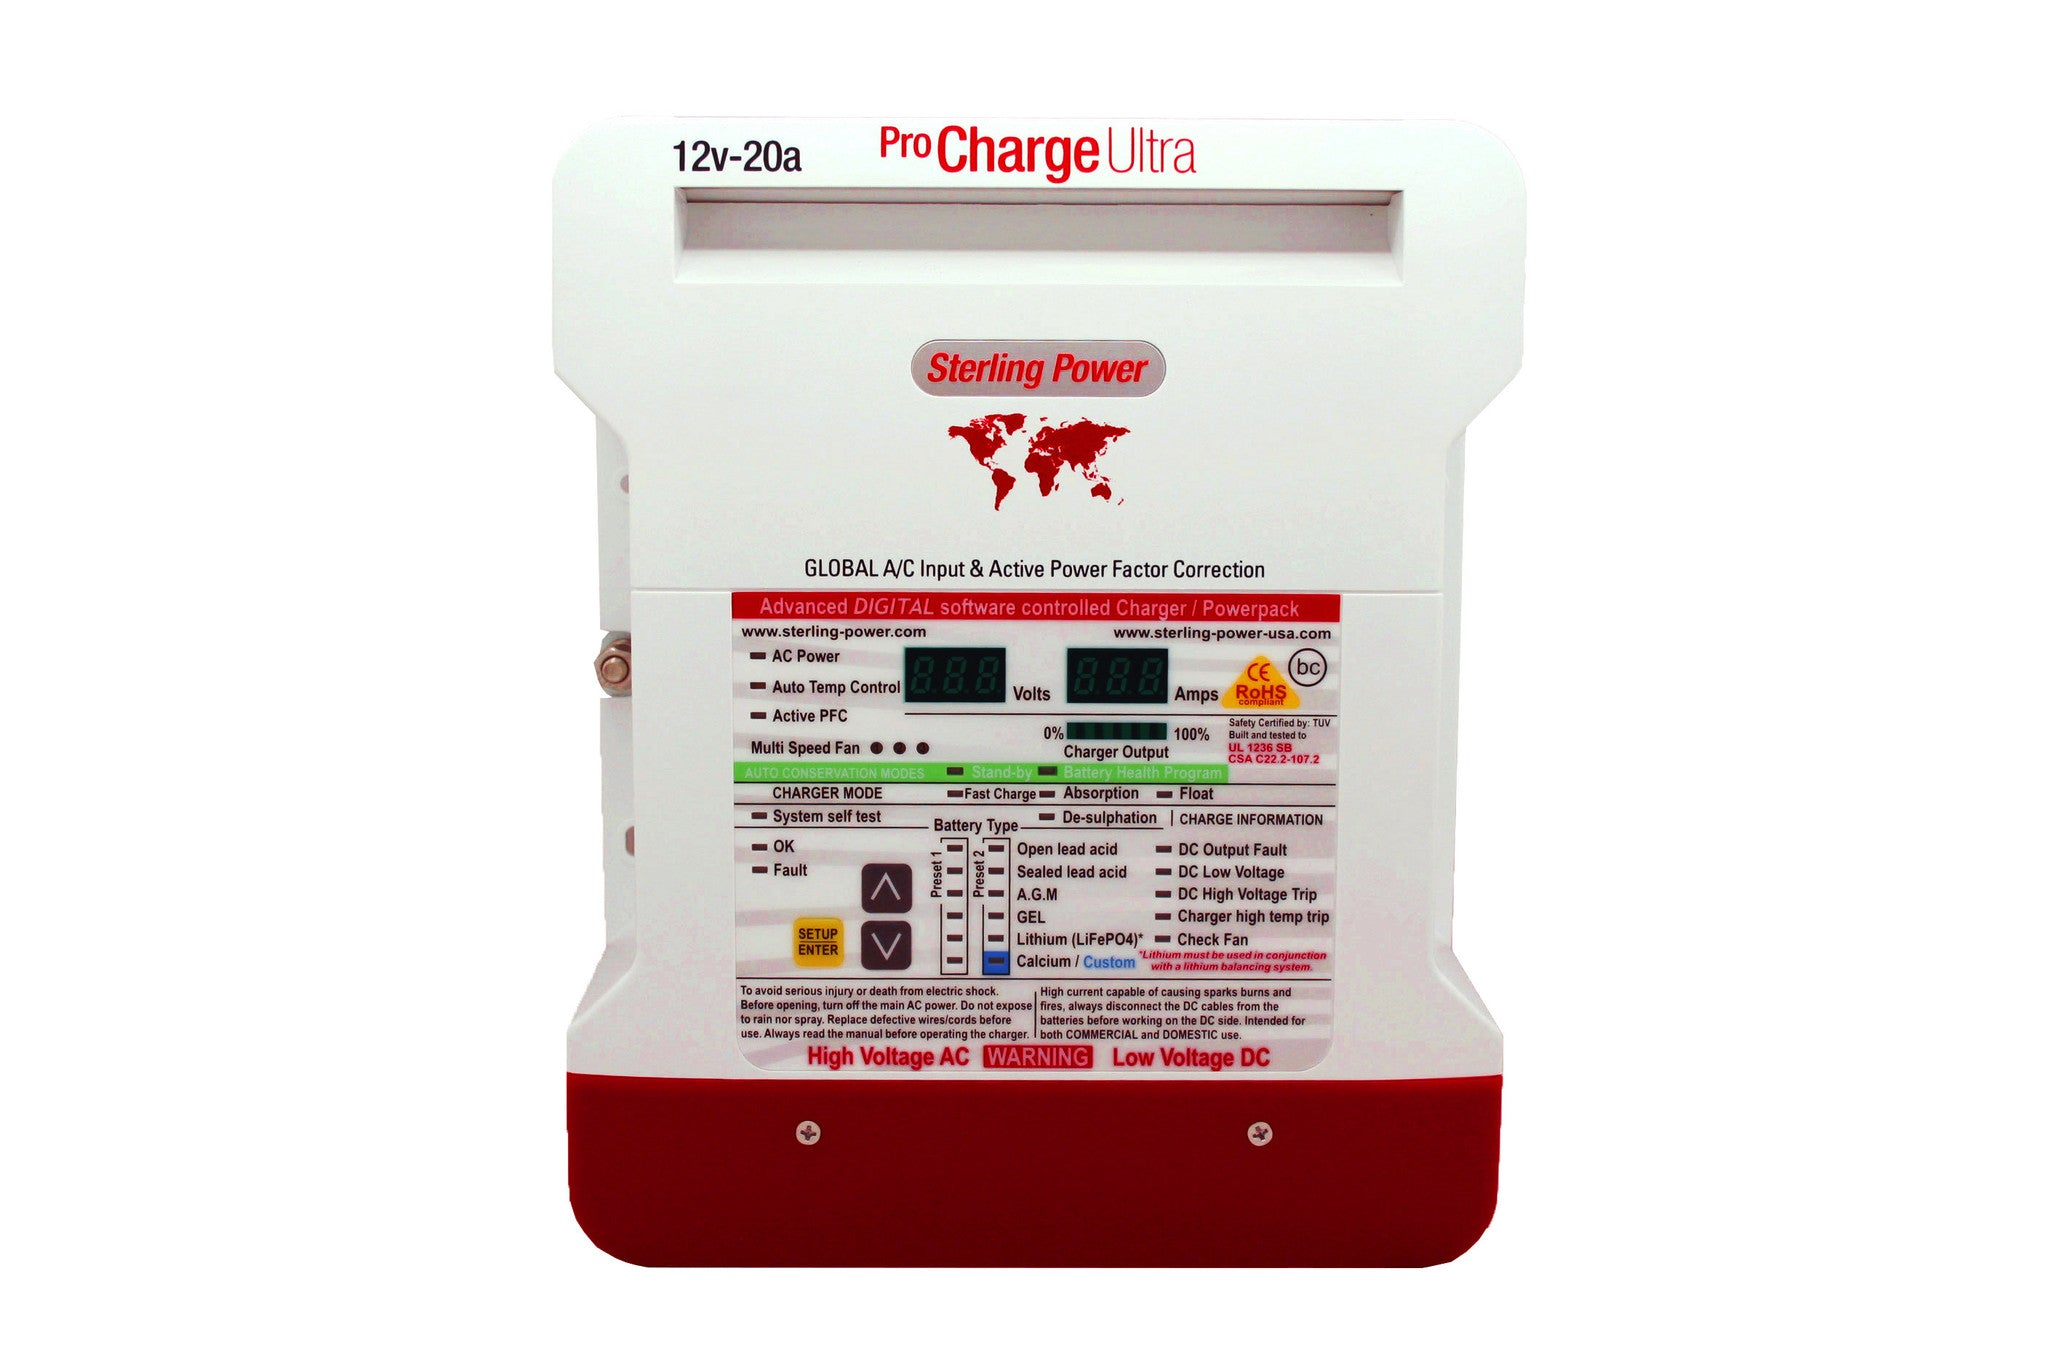 Pro Charge Ultra 10A-60A (12V - 48V) (5yr Warranty)